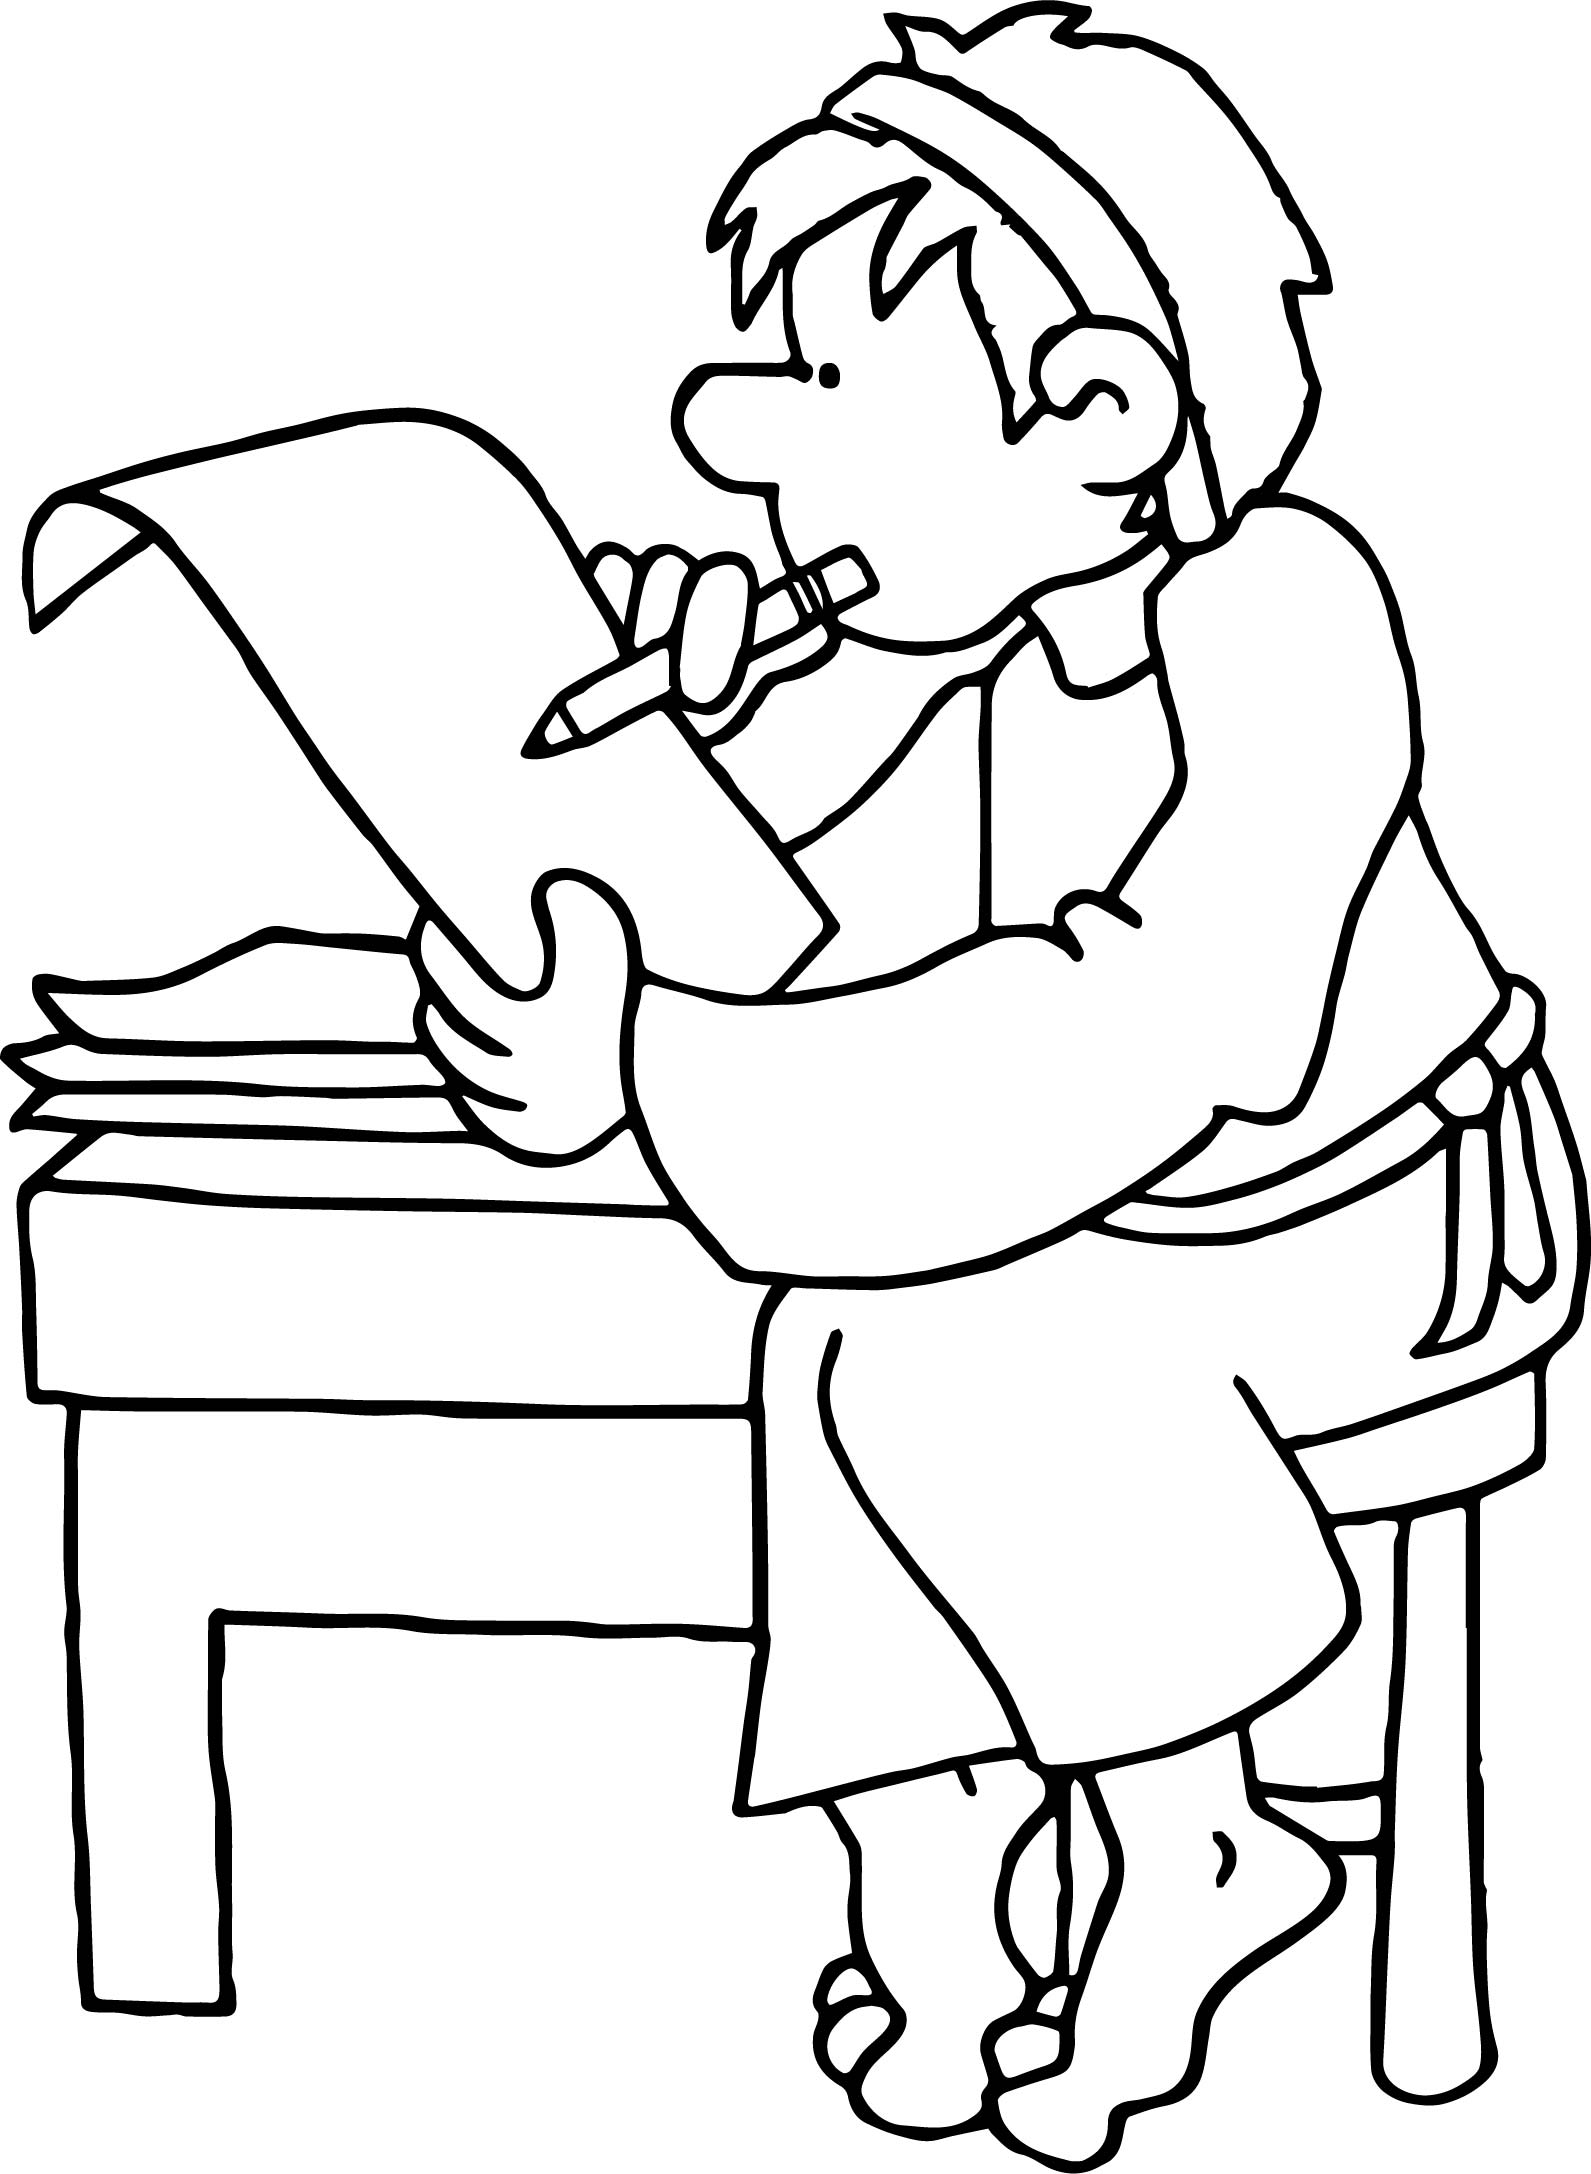 paul the apostle coloring pages - photo#20